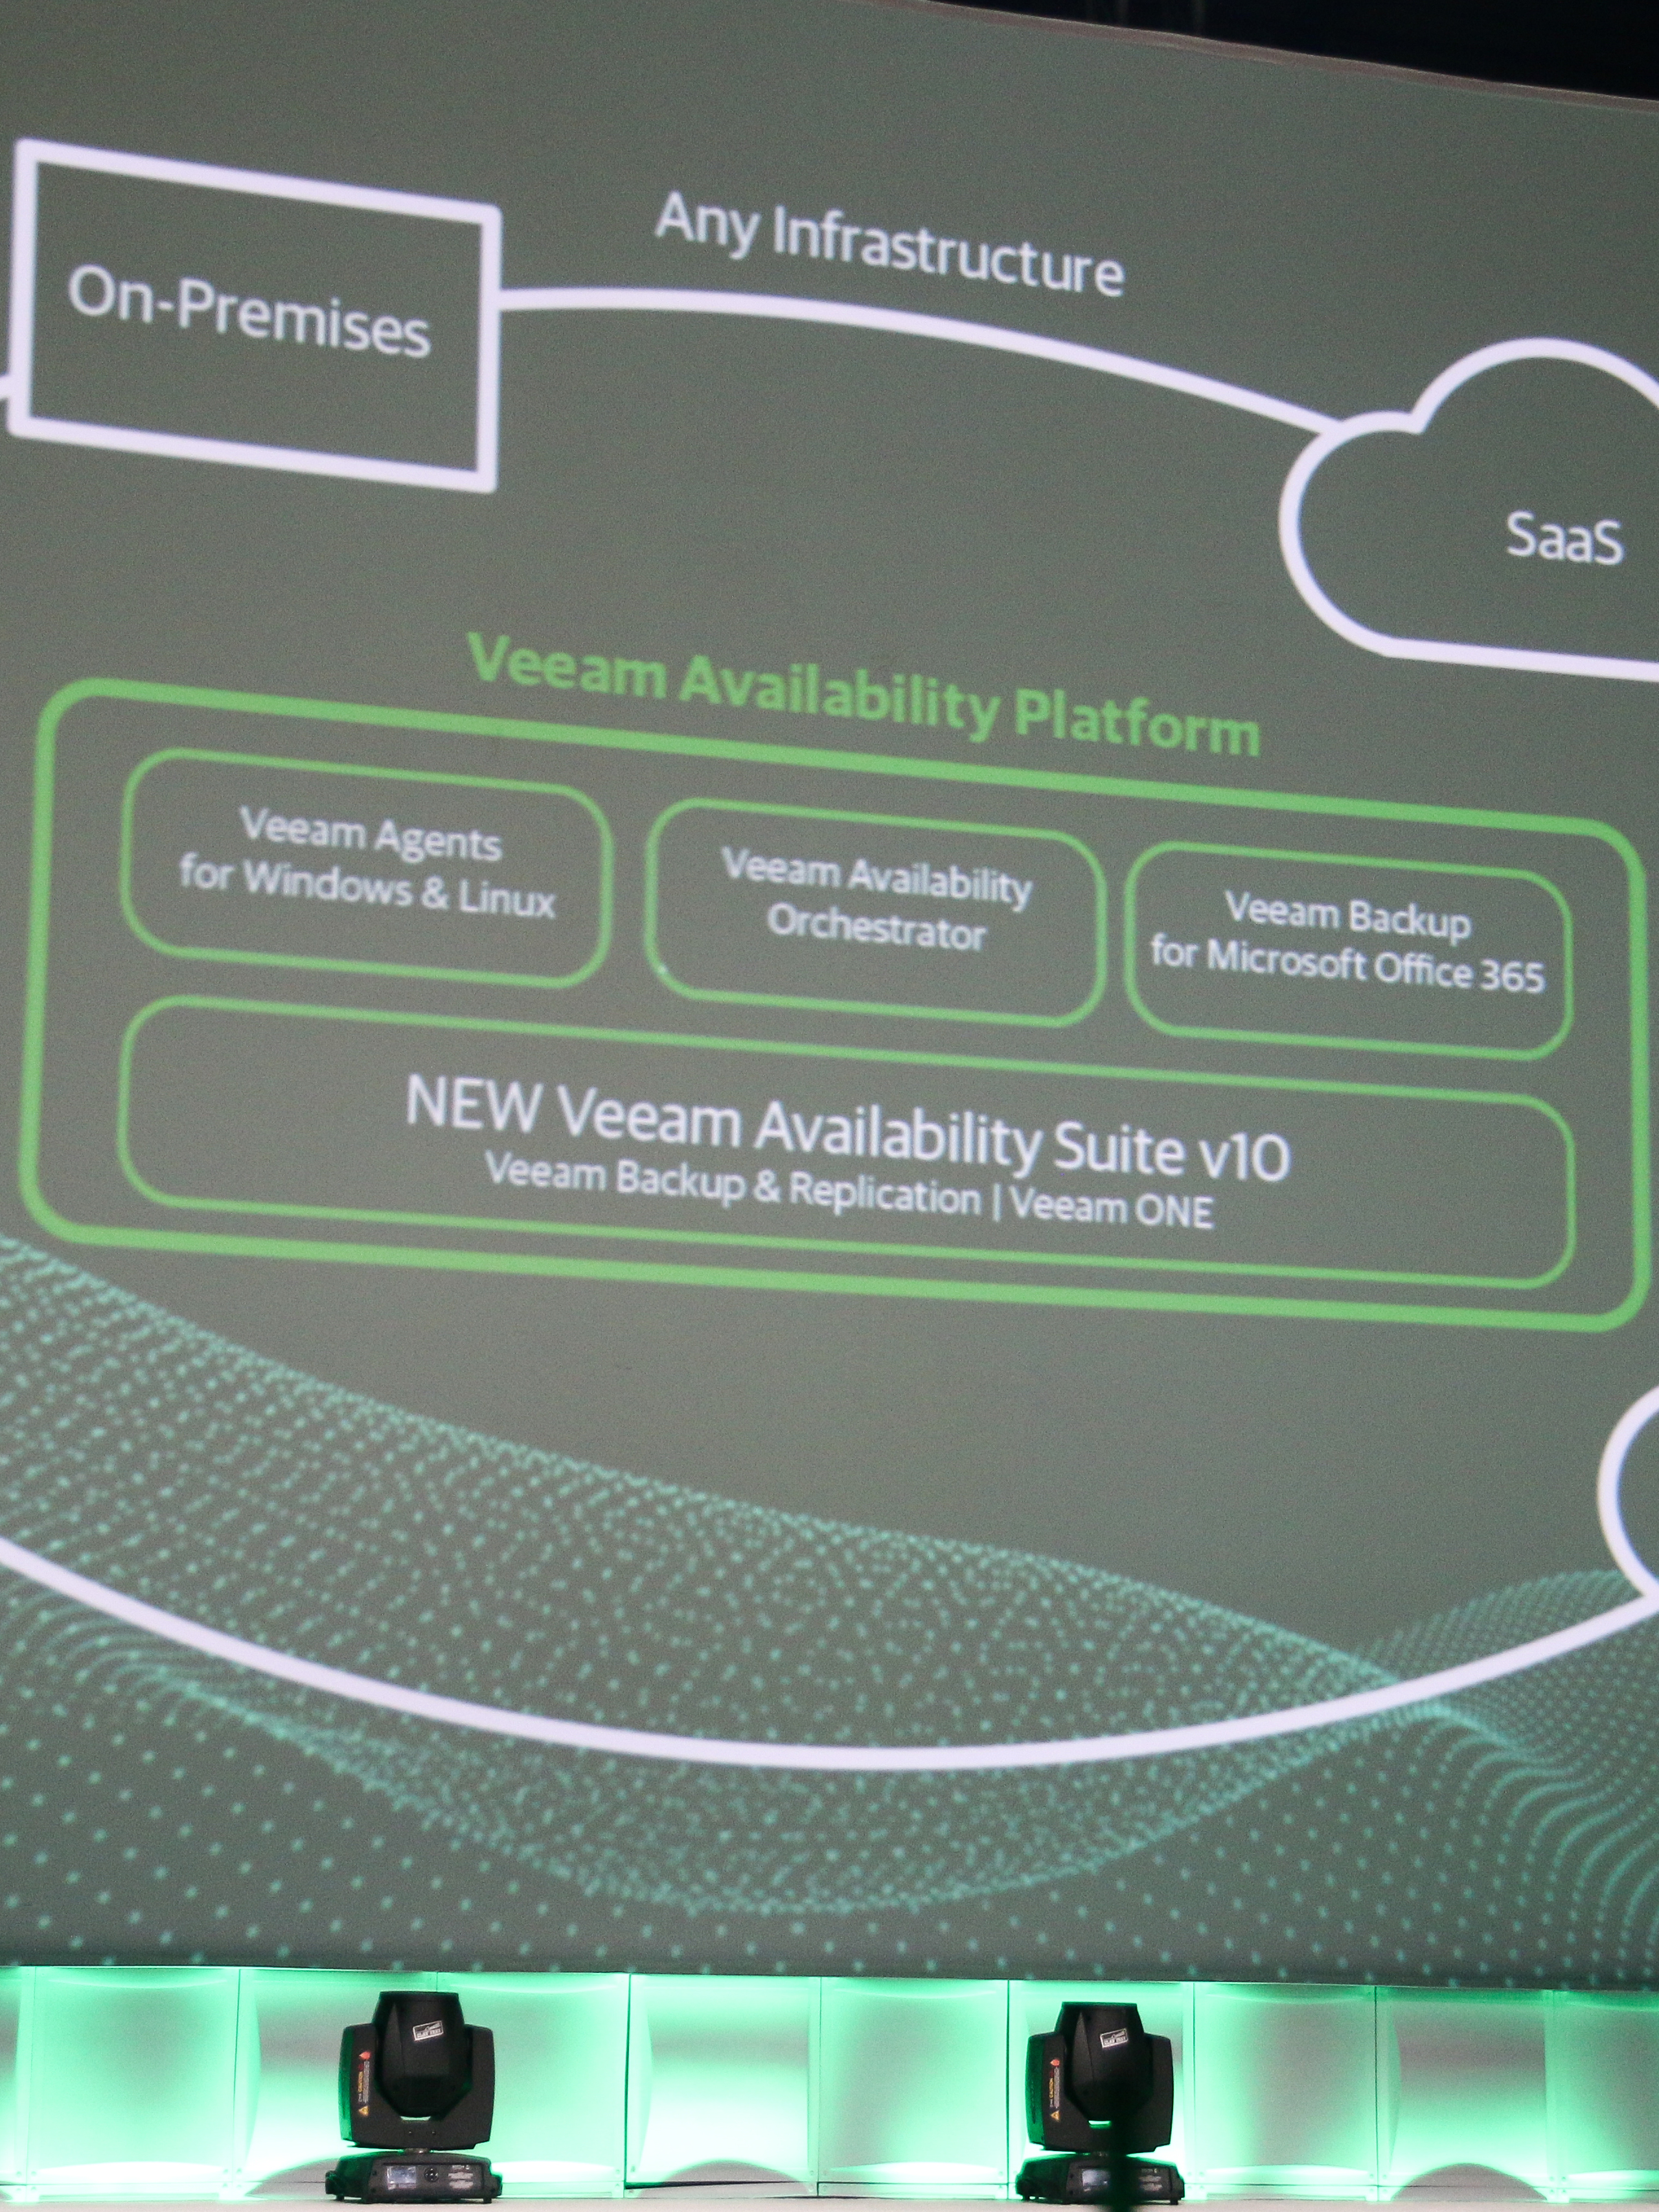 VeeamON 2017: Veeam Availability Suite v10 and a host of other solutions